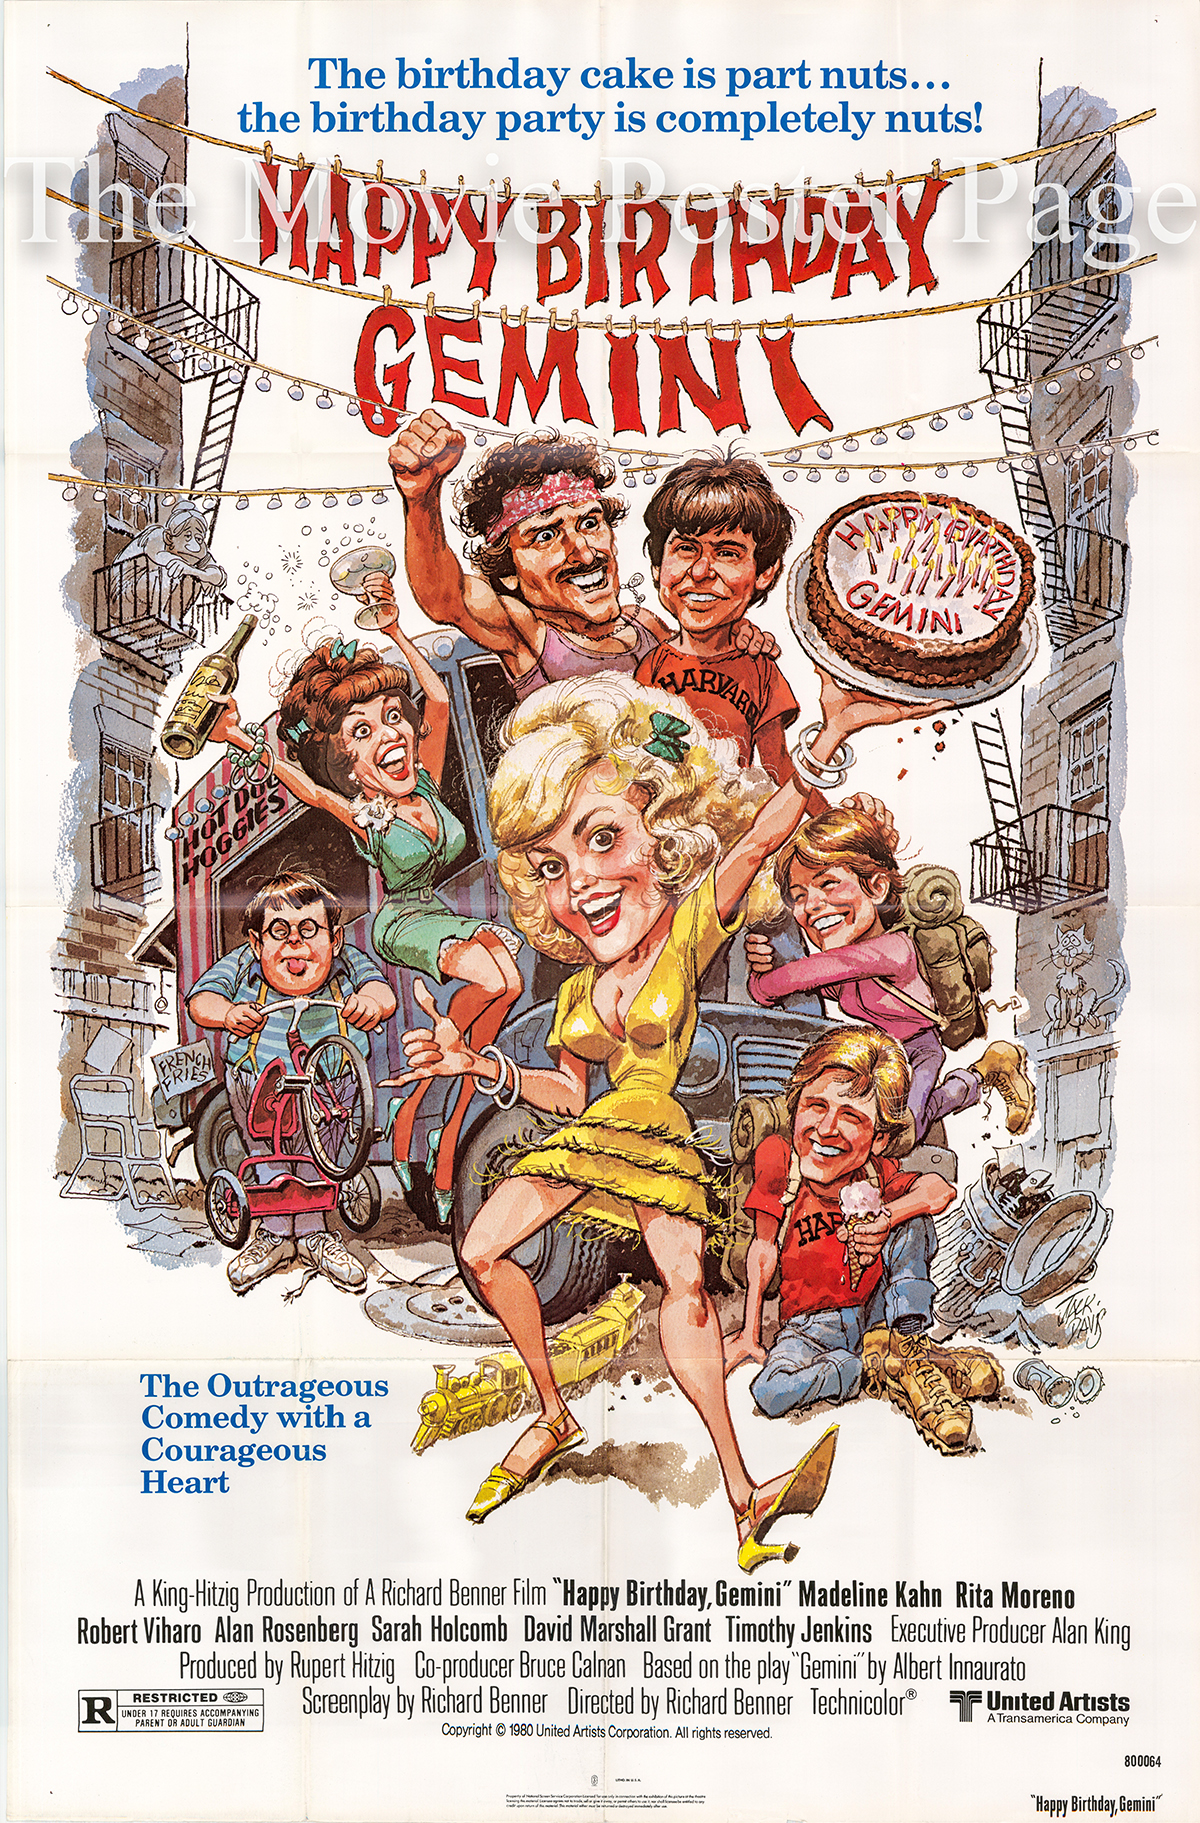 Pictured is a US promotional one-sheet poster for the 1980 Richard Benner film Happy Birthday Gemini starring Madeline Kahn as Bunny Weinberger.